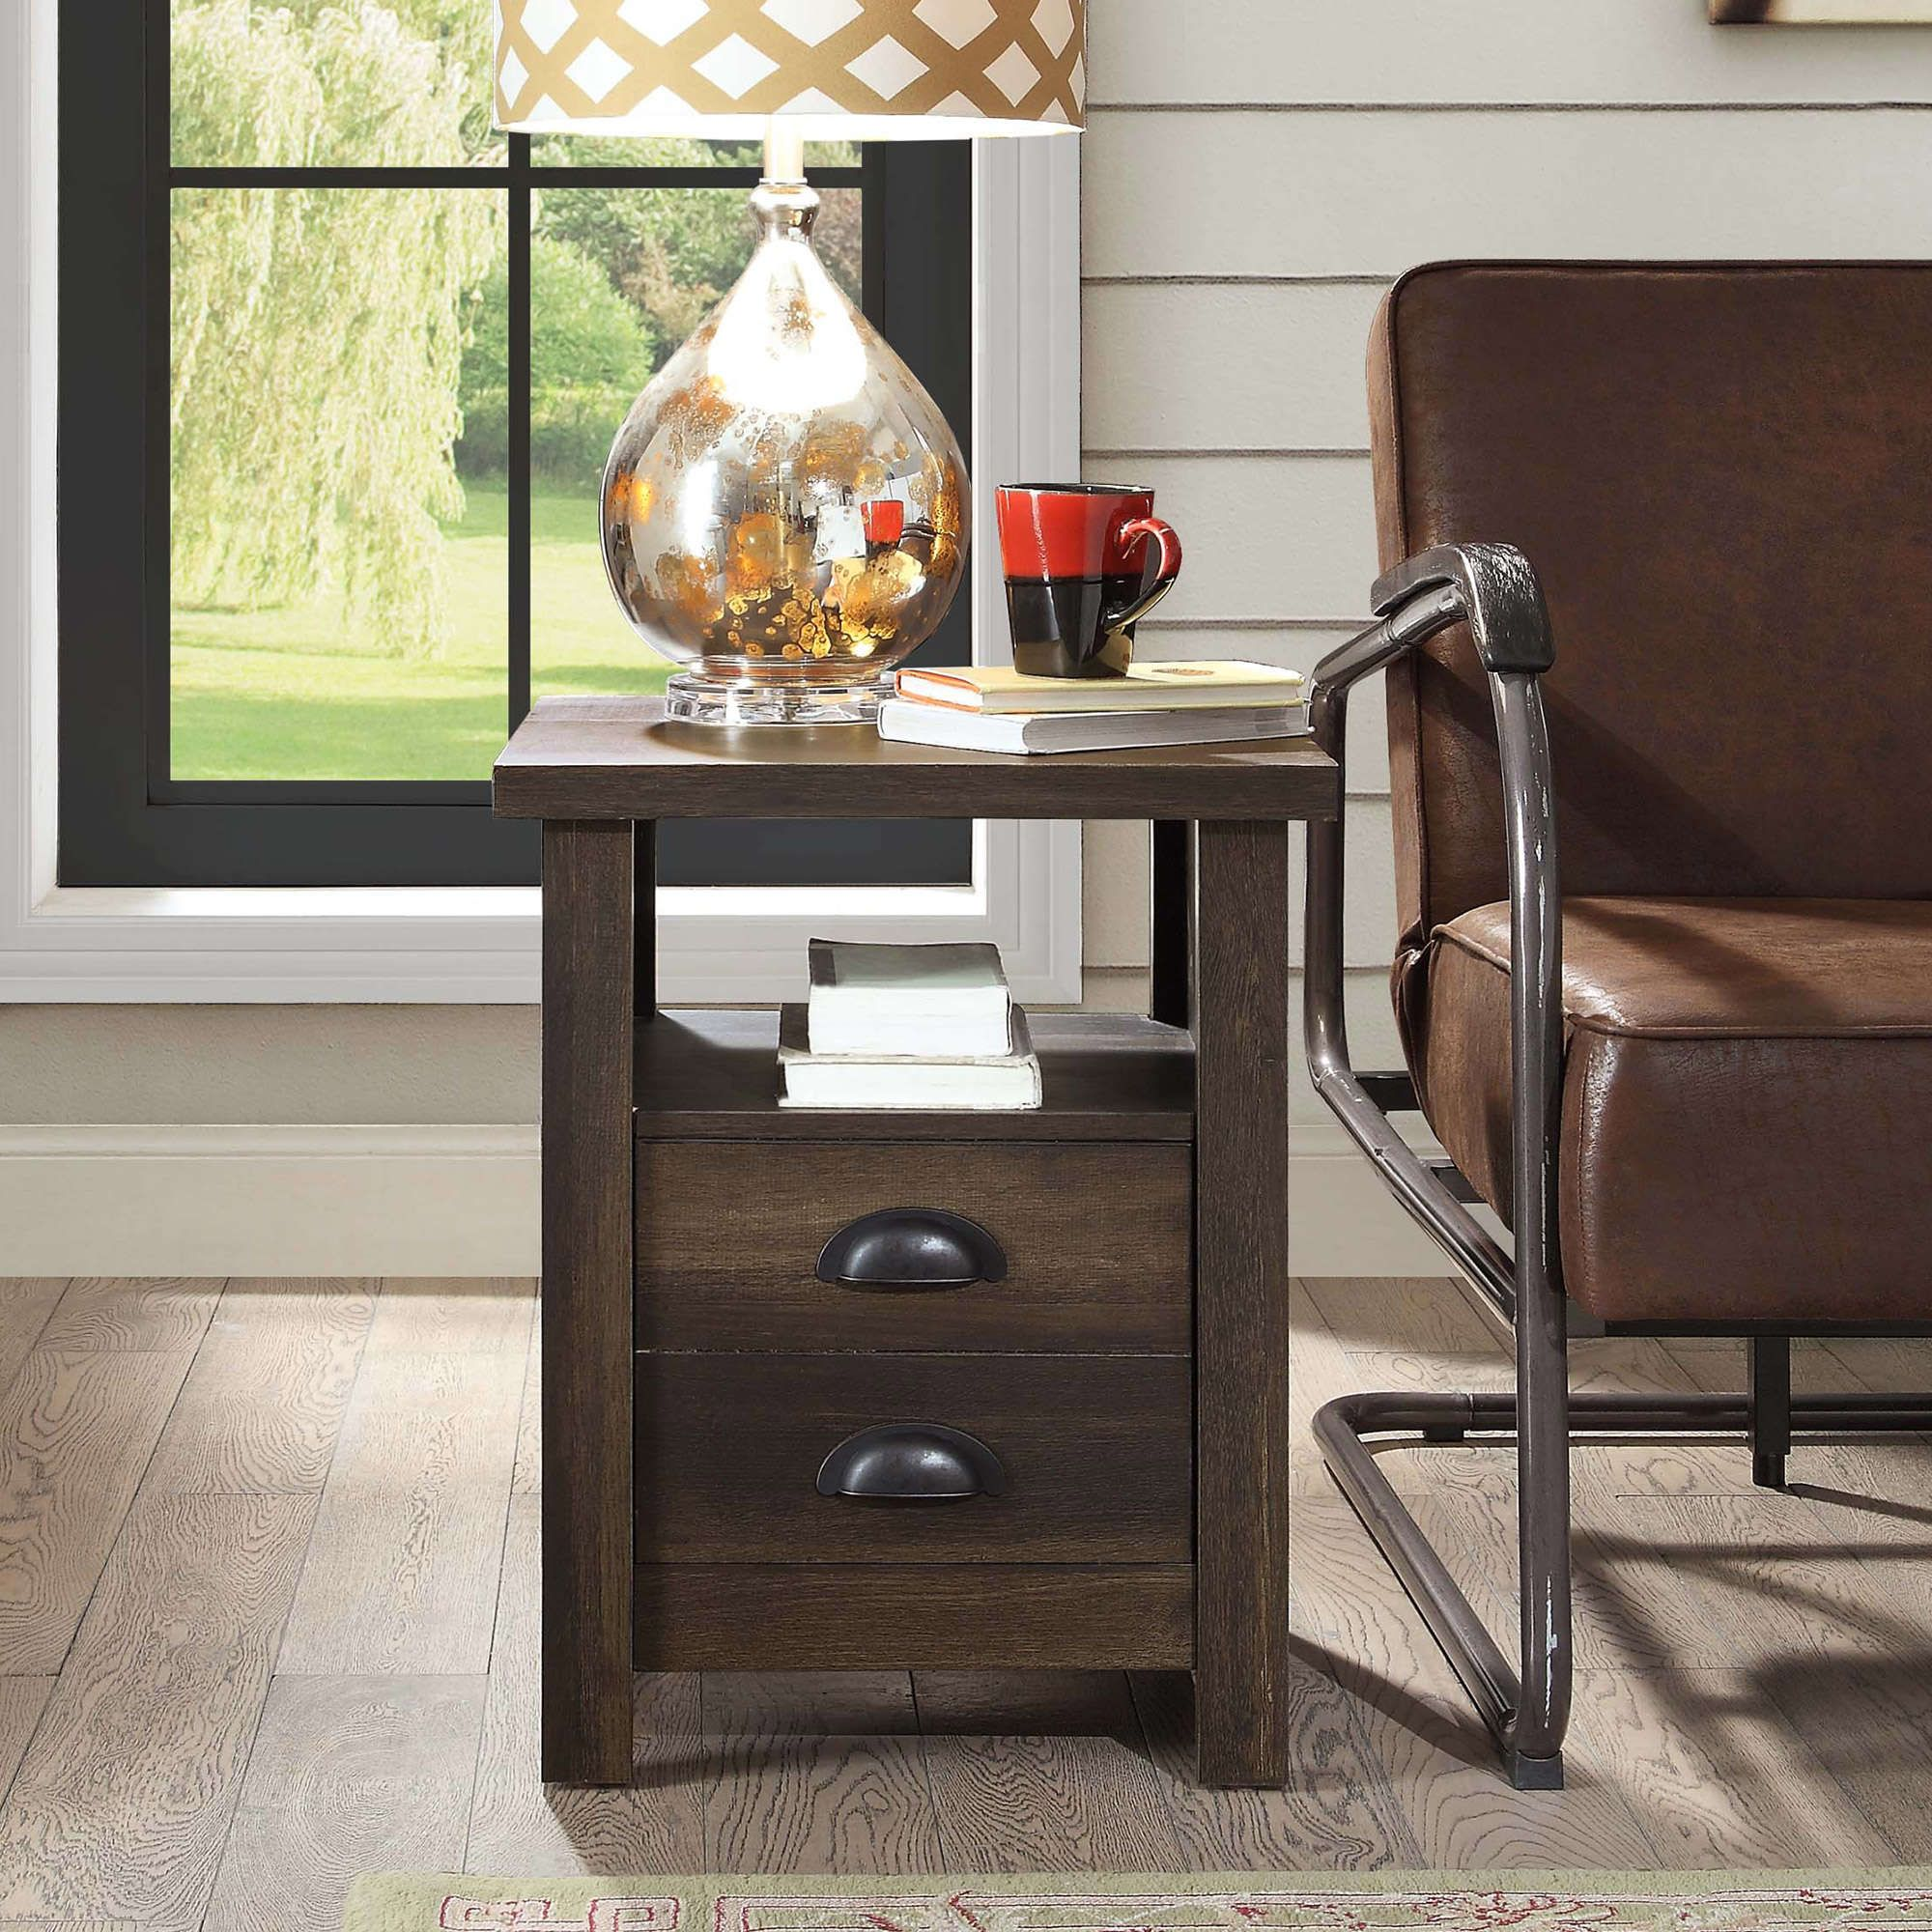 e7f61ba879c33315d5301b180497f327 - Better Homes And Gardens Bedford Accent Table